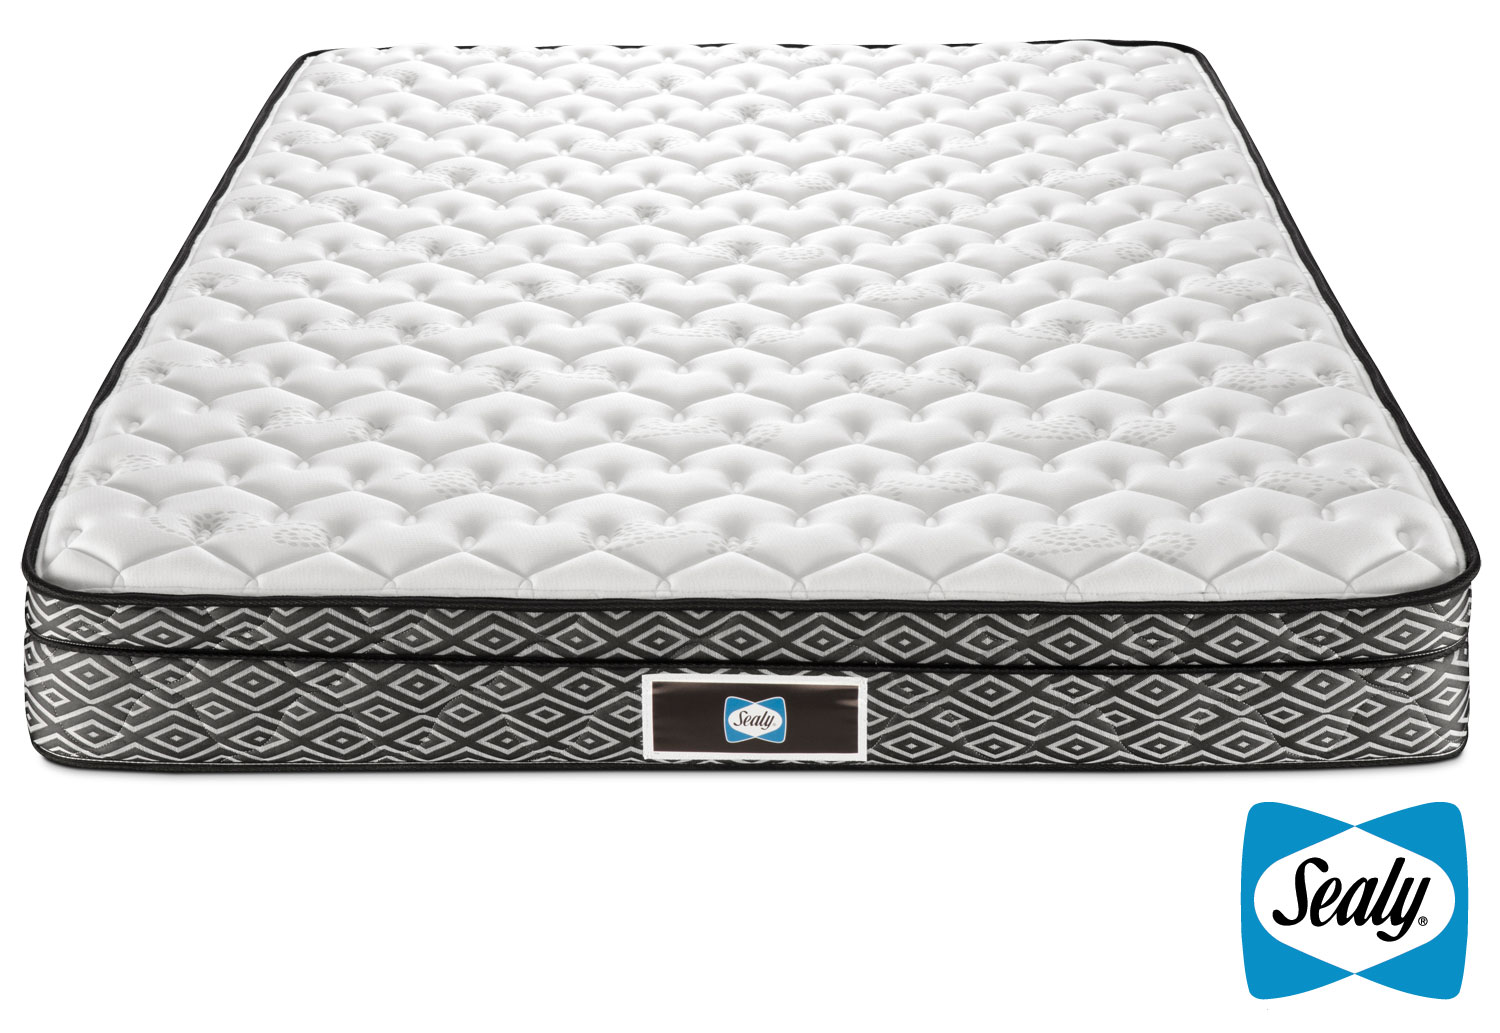 Sealy Tale Queen Mattress